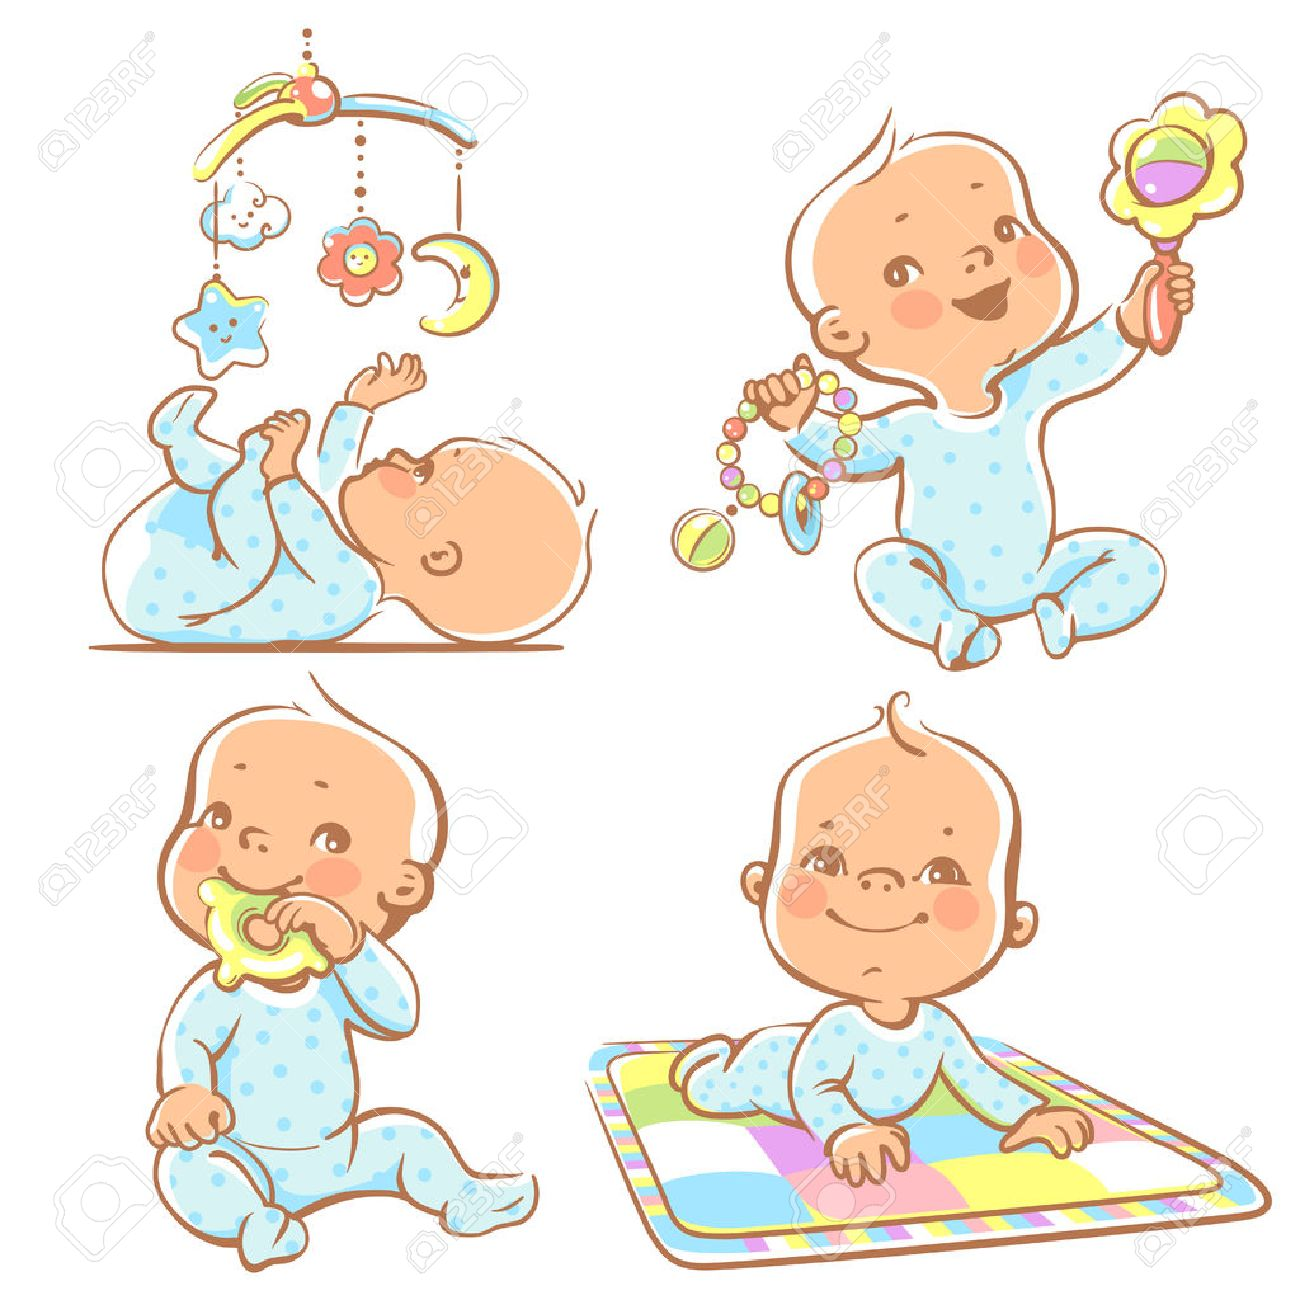 Set of babies playing toys. First year games. Baby hold teething toy. Baby lay on developing play mat  Baby look  at mobile toy.Colorful vector Illustration isolated on white background Stock Vector - 54354103